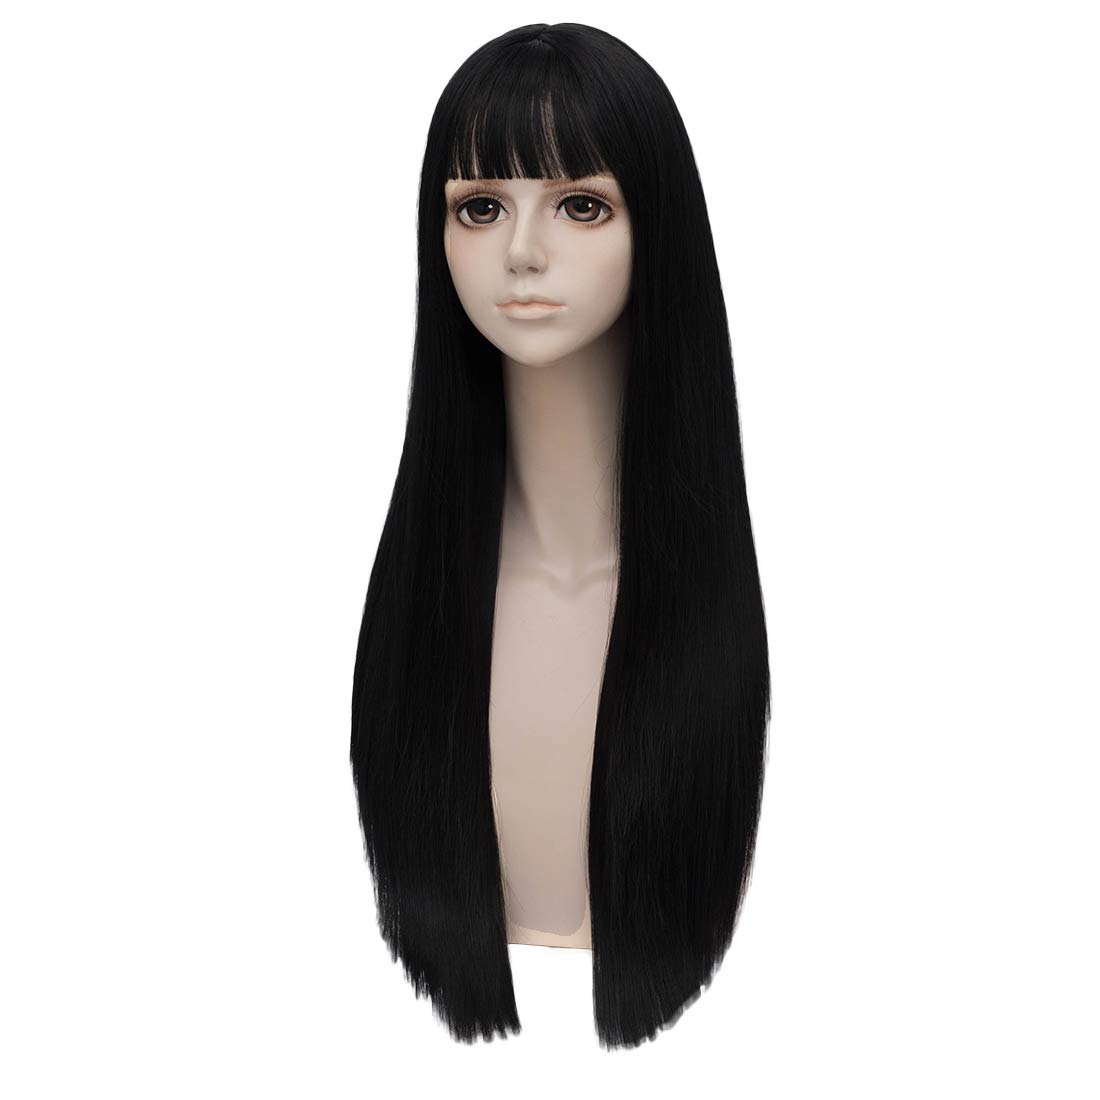 netgo Women Black Wigs Long Straight-Natural Cosplay Costume Wig with Bangs SY